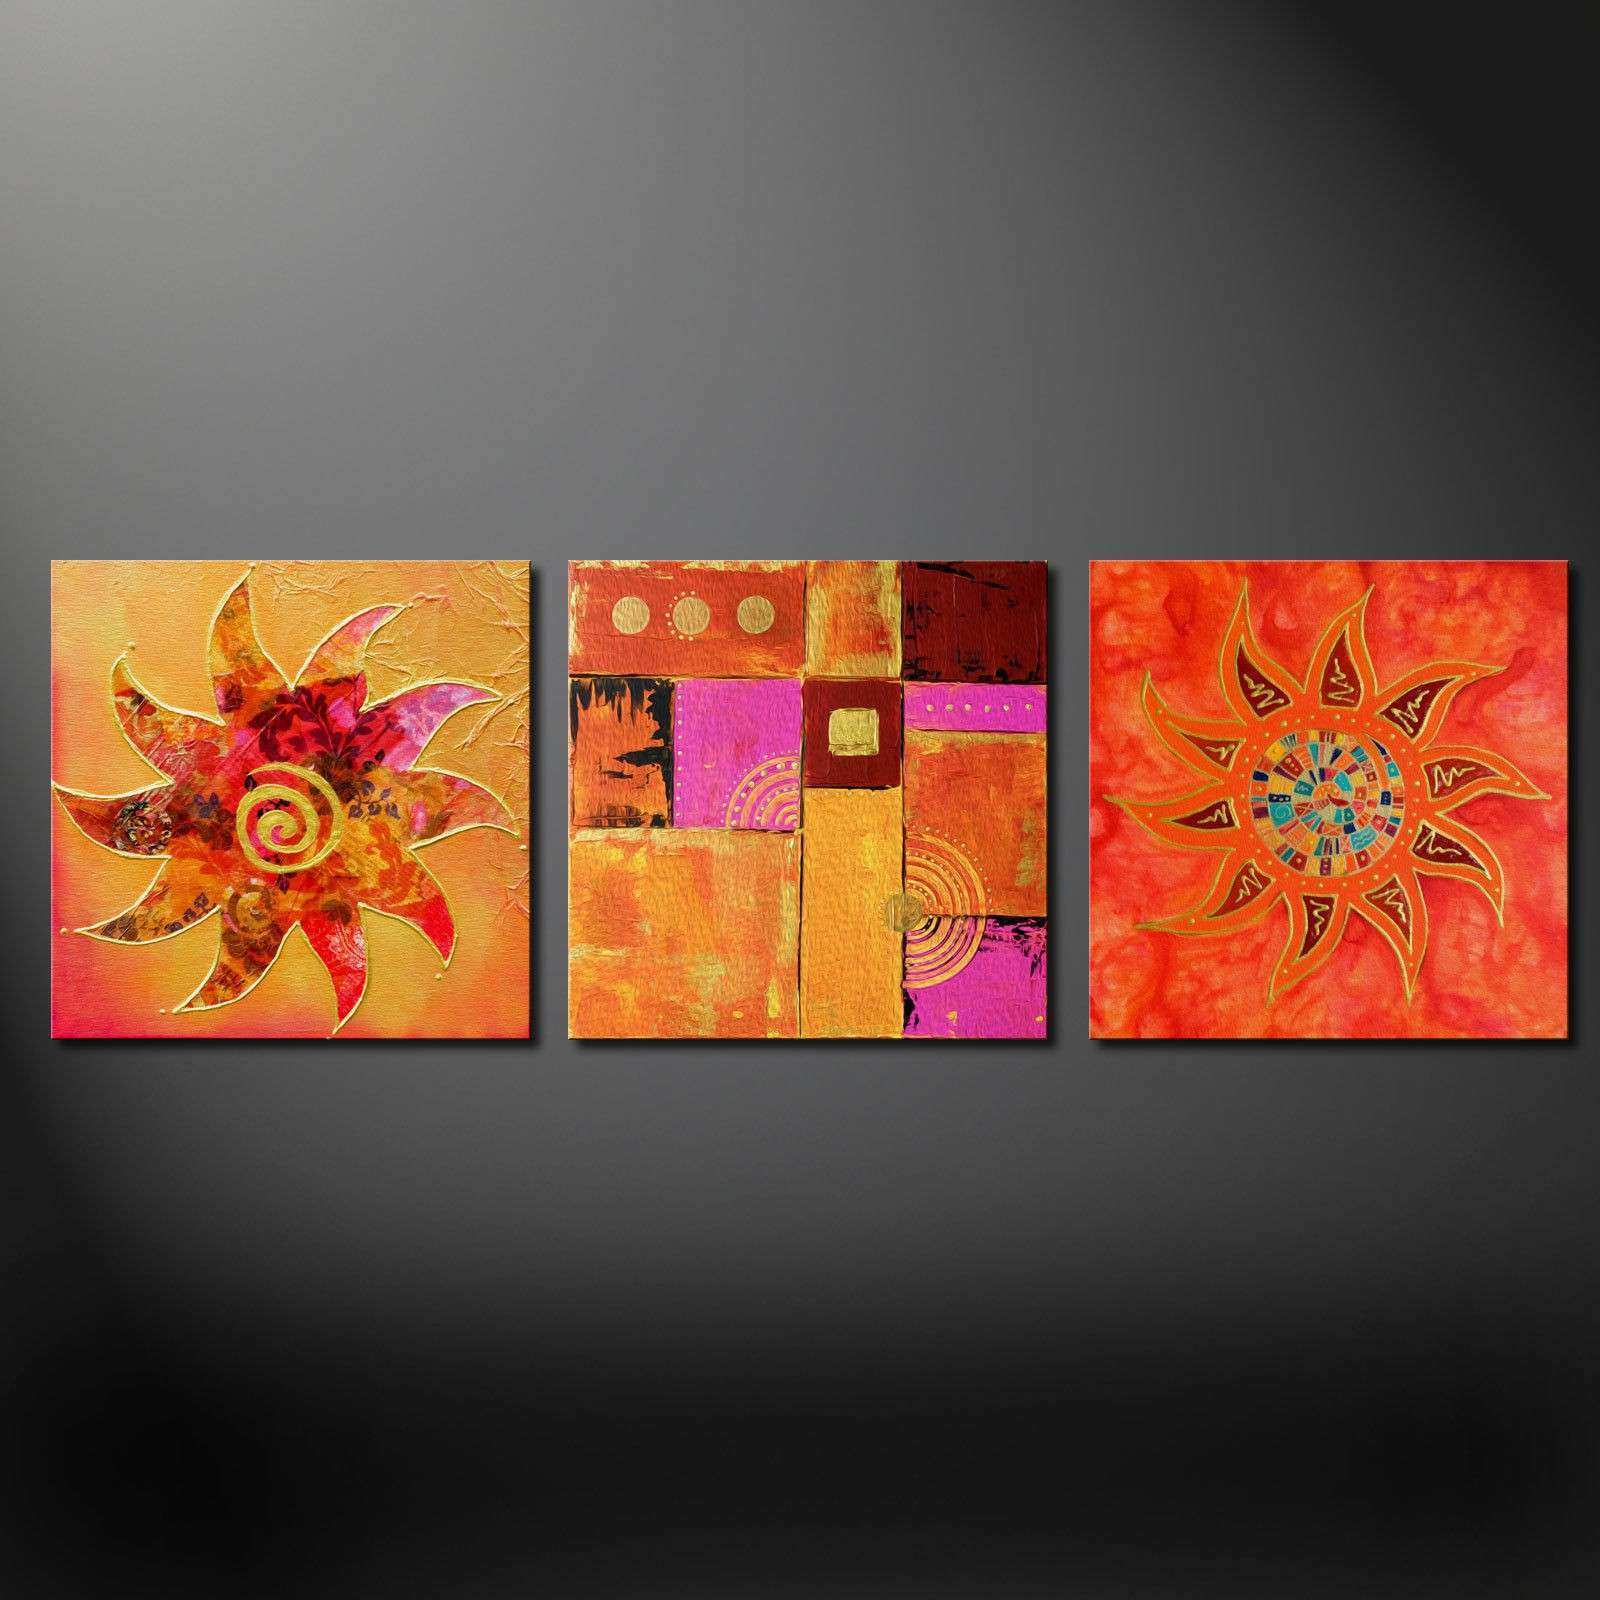 Canvas print pictures High quality Handmade Free next